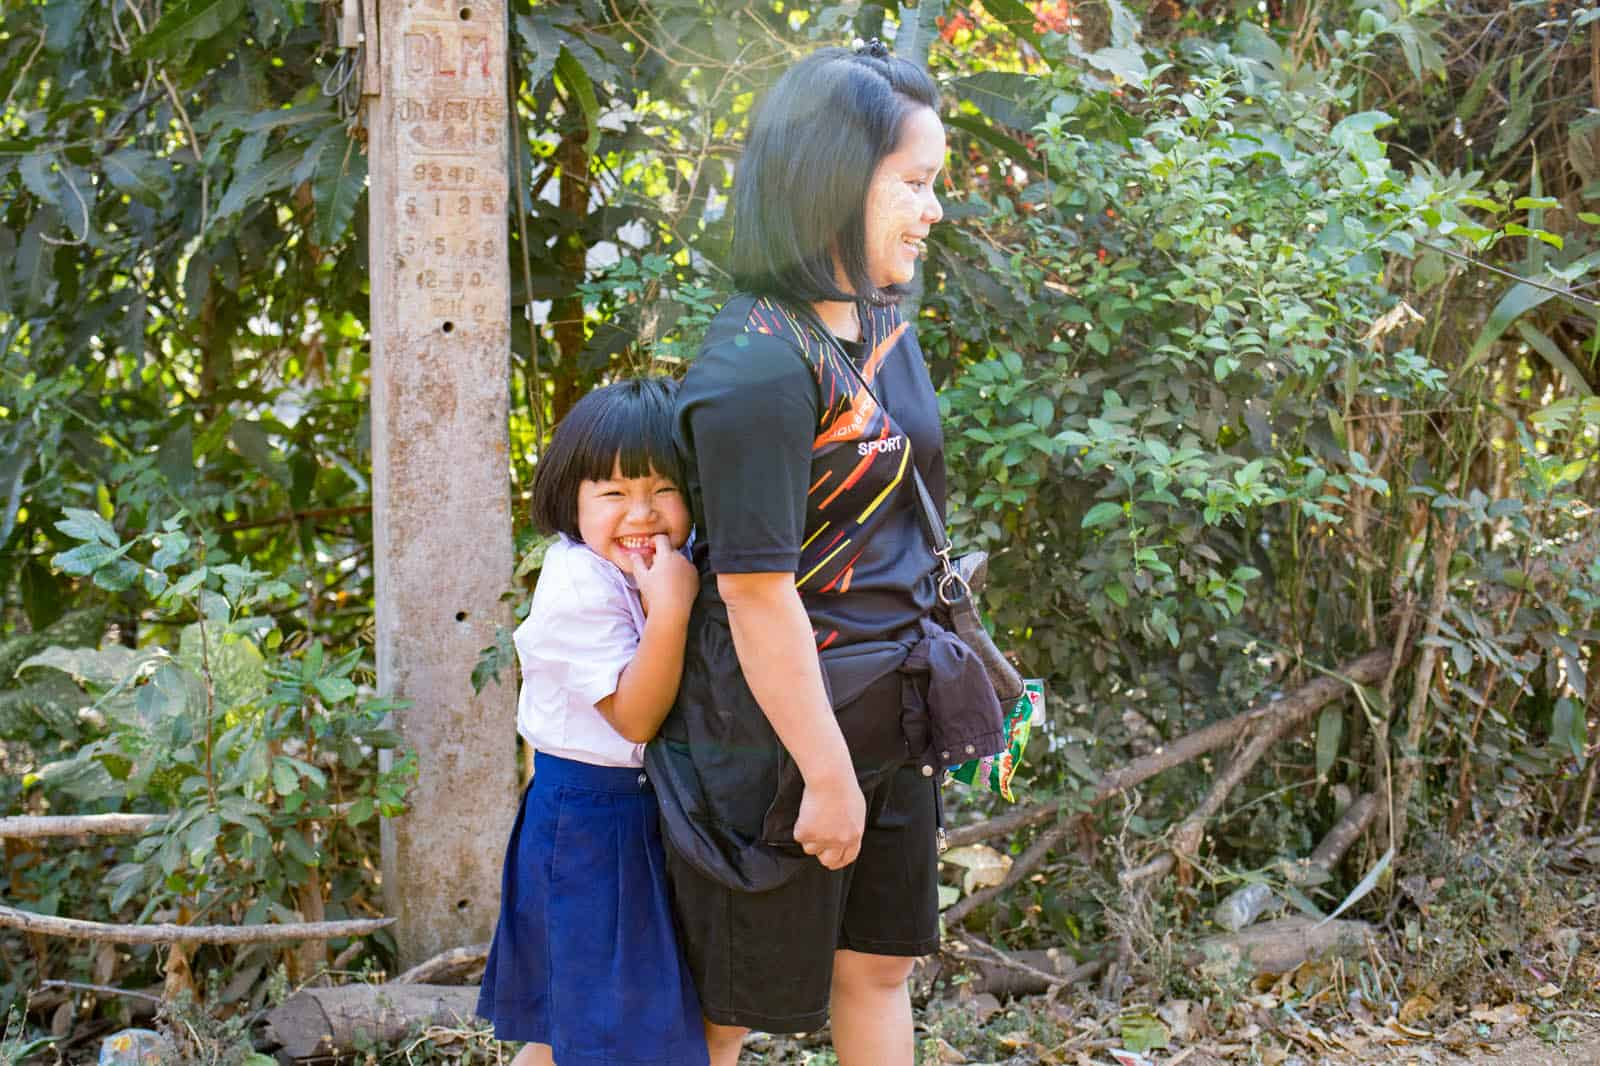 Sureeporn standing behind her mother giggling